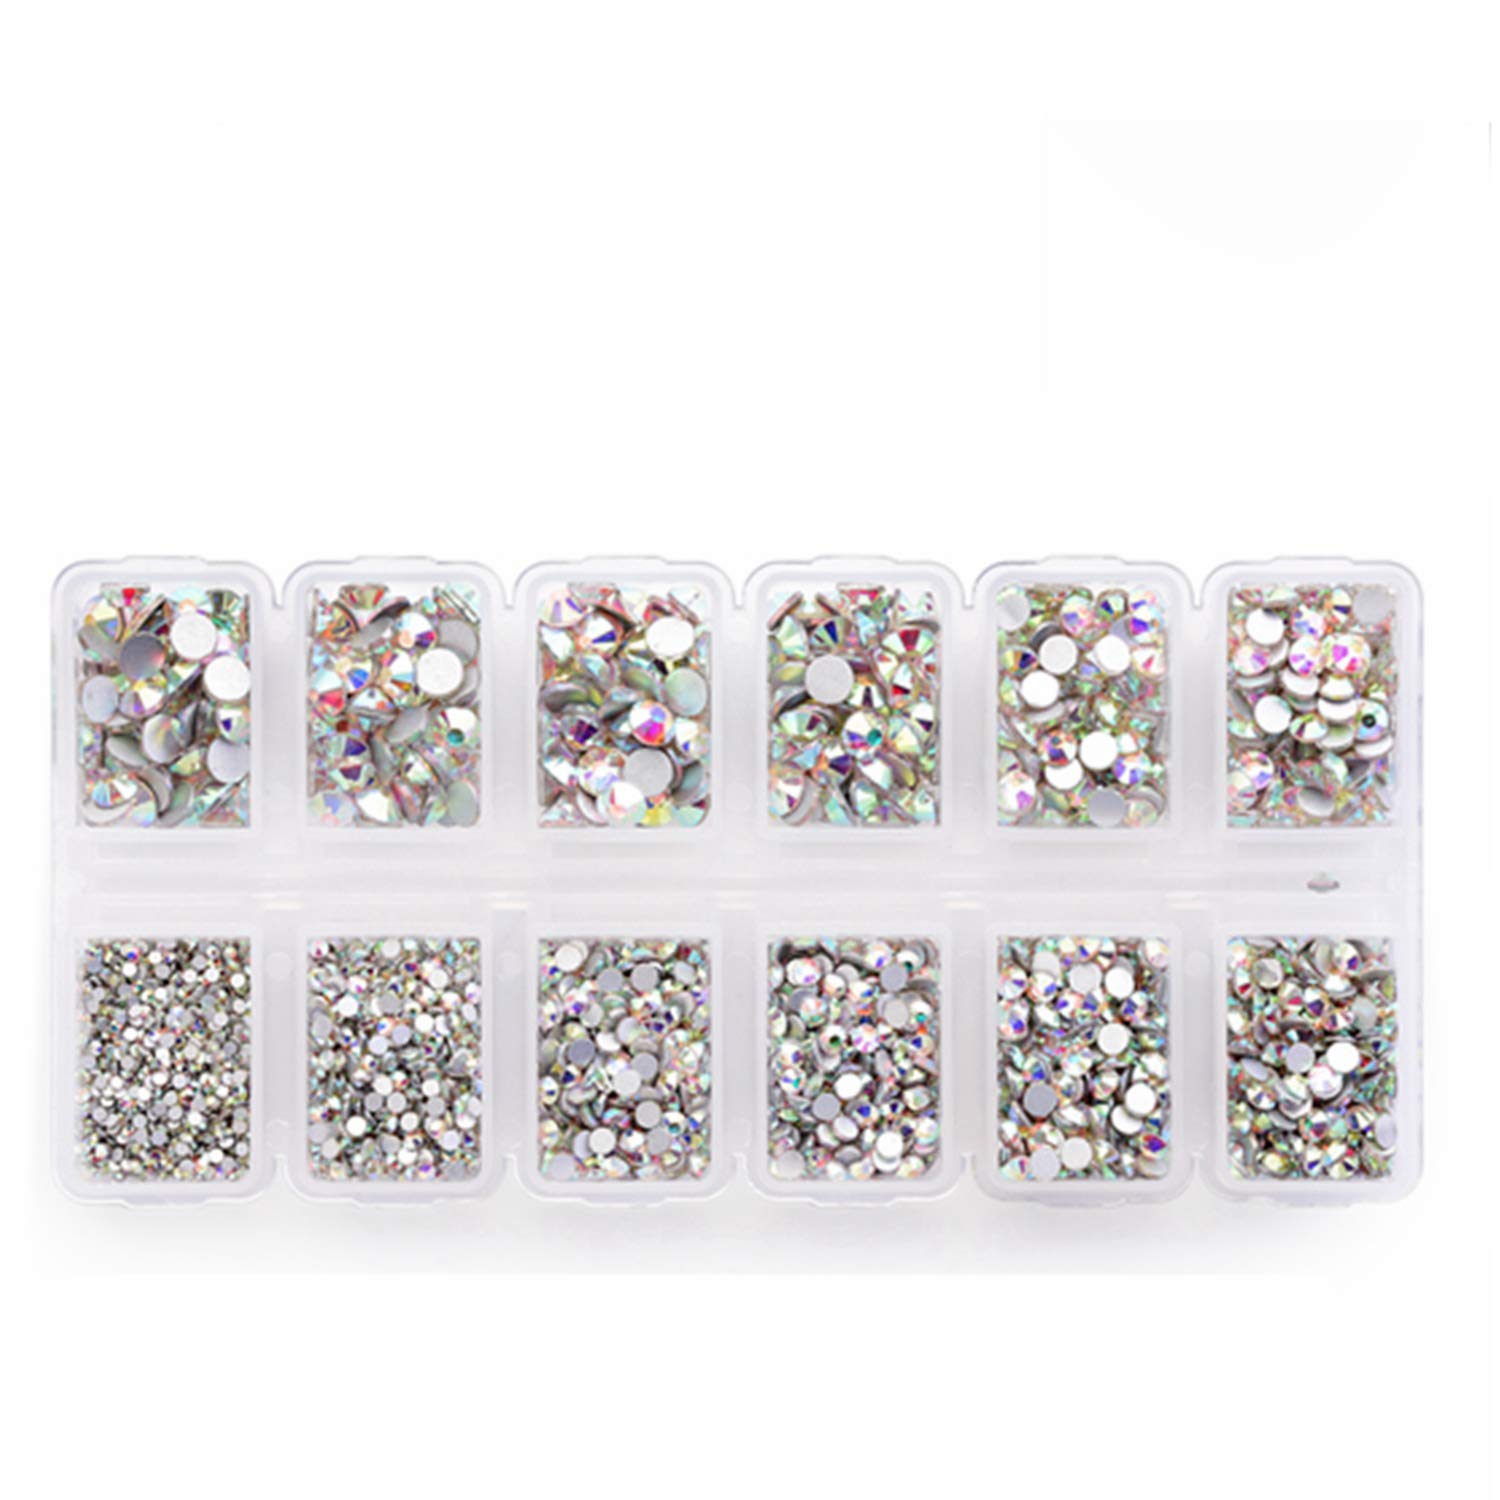 Zealer 1800pcs Crystals AB Nail Art Rhinestones Round Beads Top Grade  Flatback Glass Charms Gems Stones 51264028f1bd